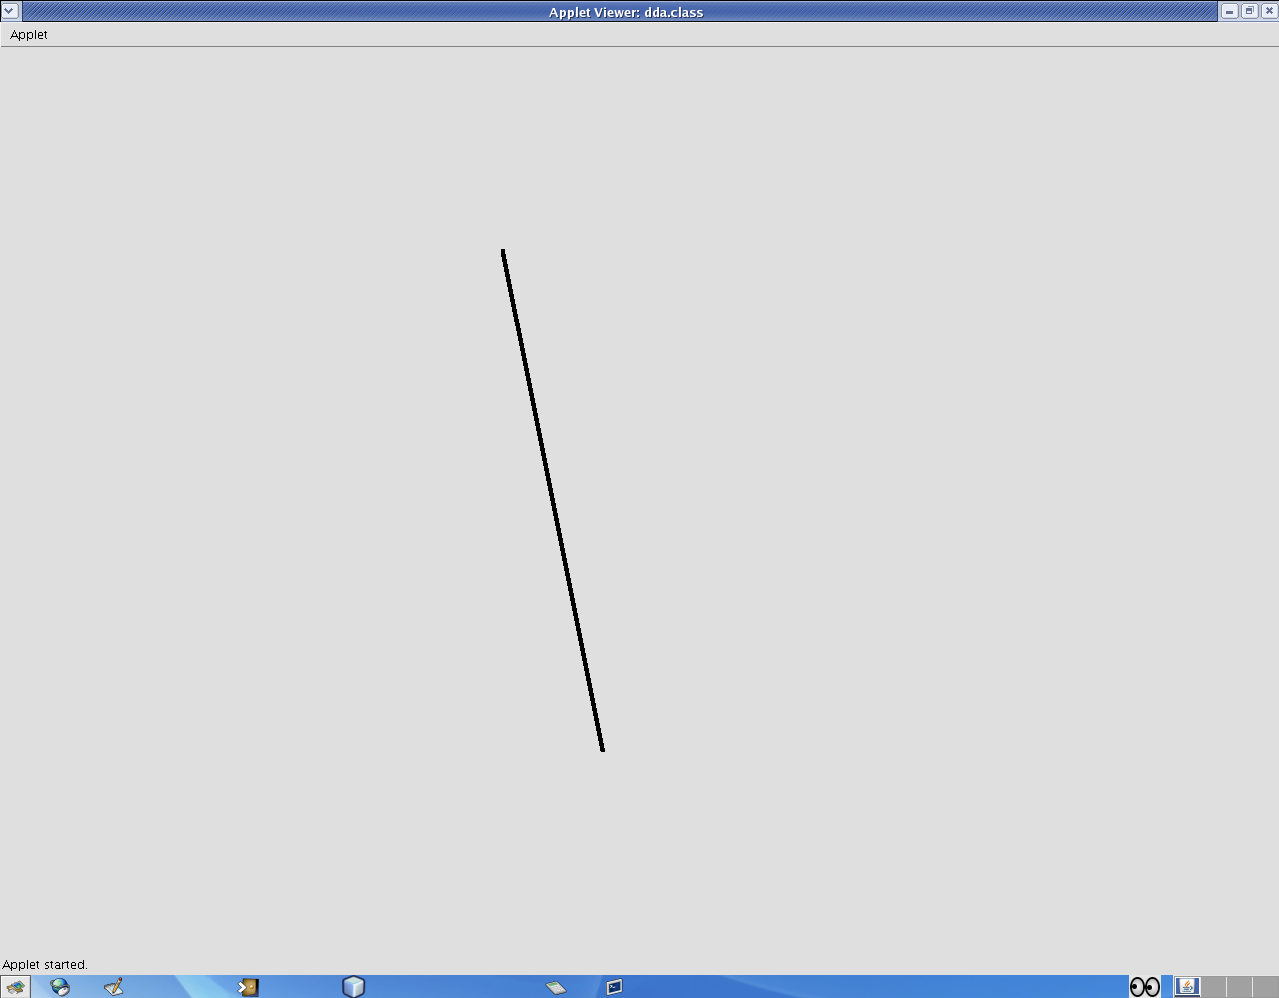 Bresenham S Line Drawing Algorithm In Java Applet : World of codes implementation dda line drawing algorithm